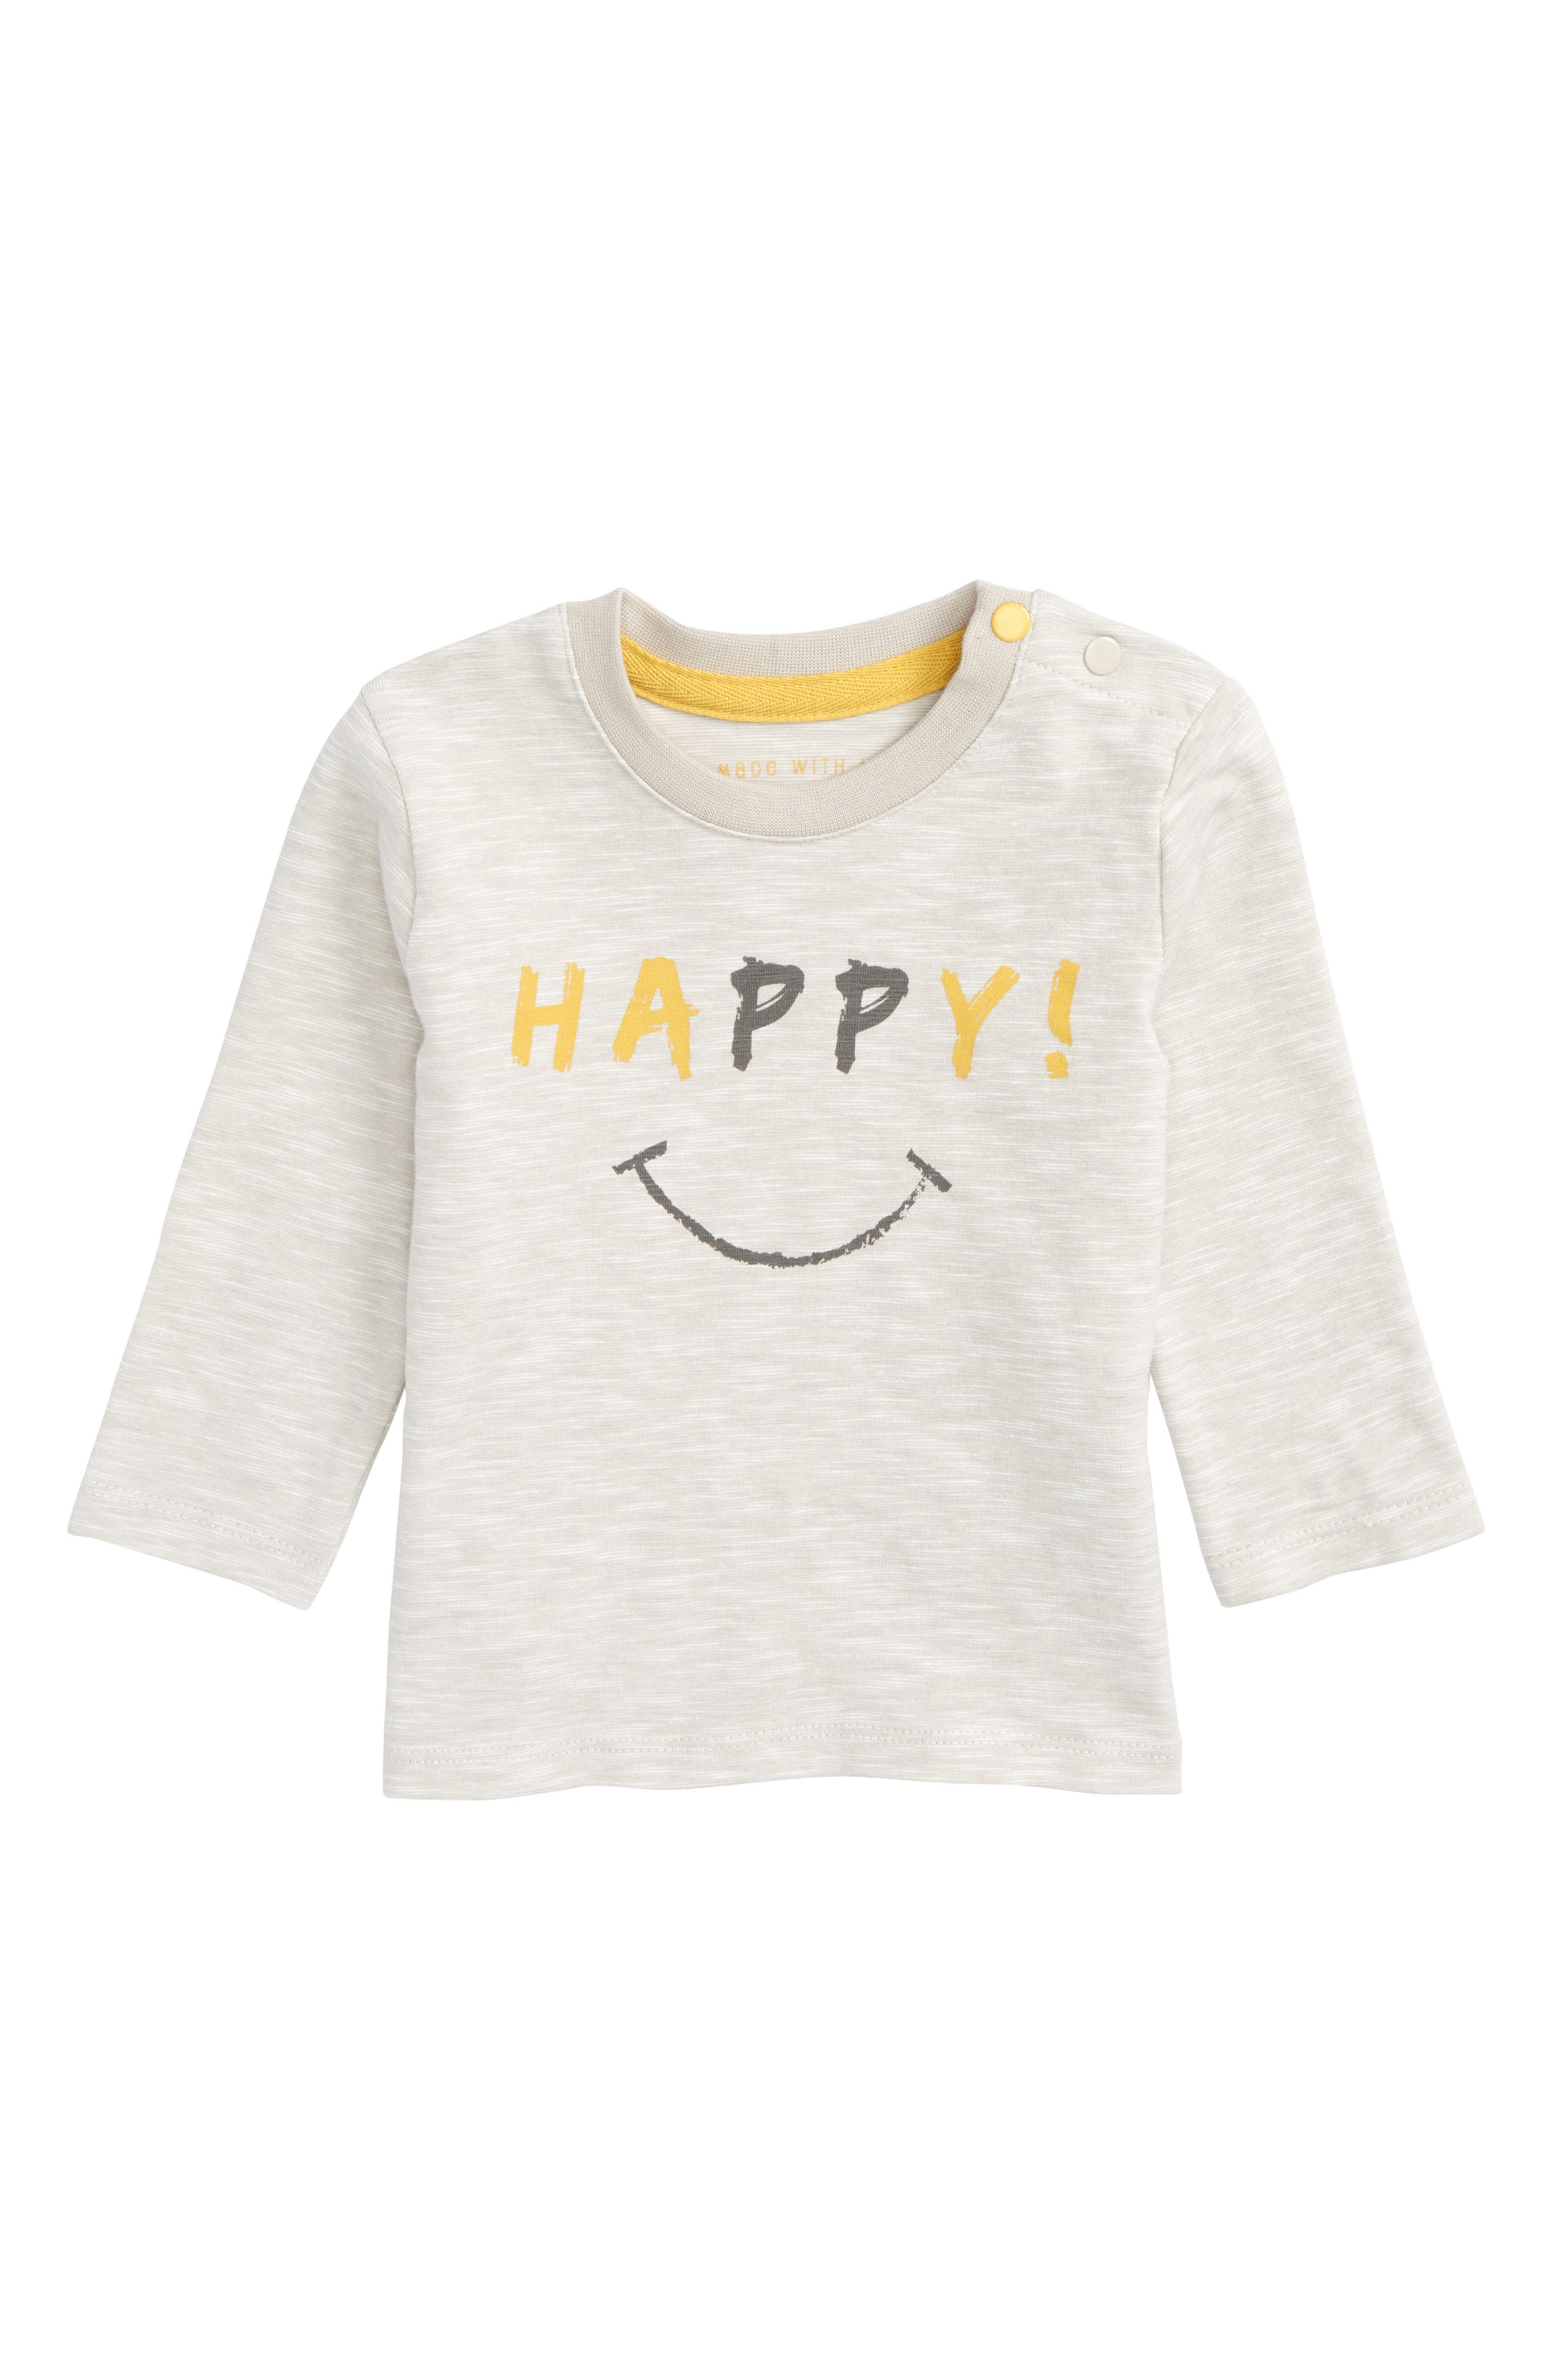 Happy Graphic T-Shirt,                             Main thumbnail 1, color,                             Grey